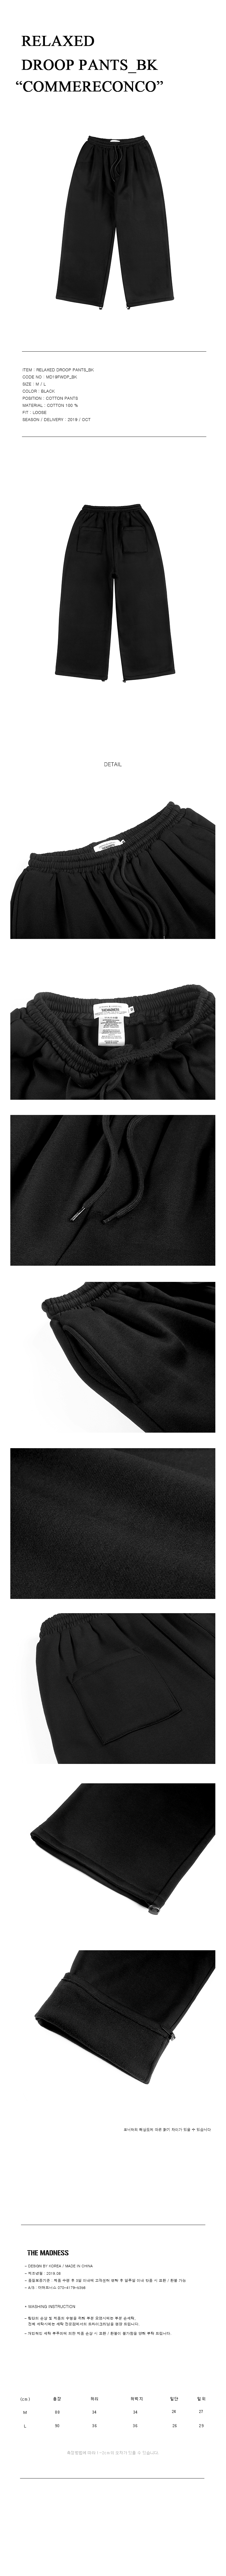 RELAXED DROOP PANTS_BK